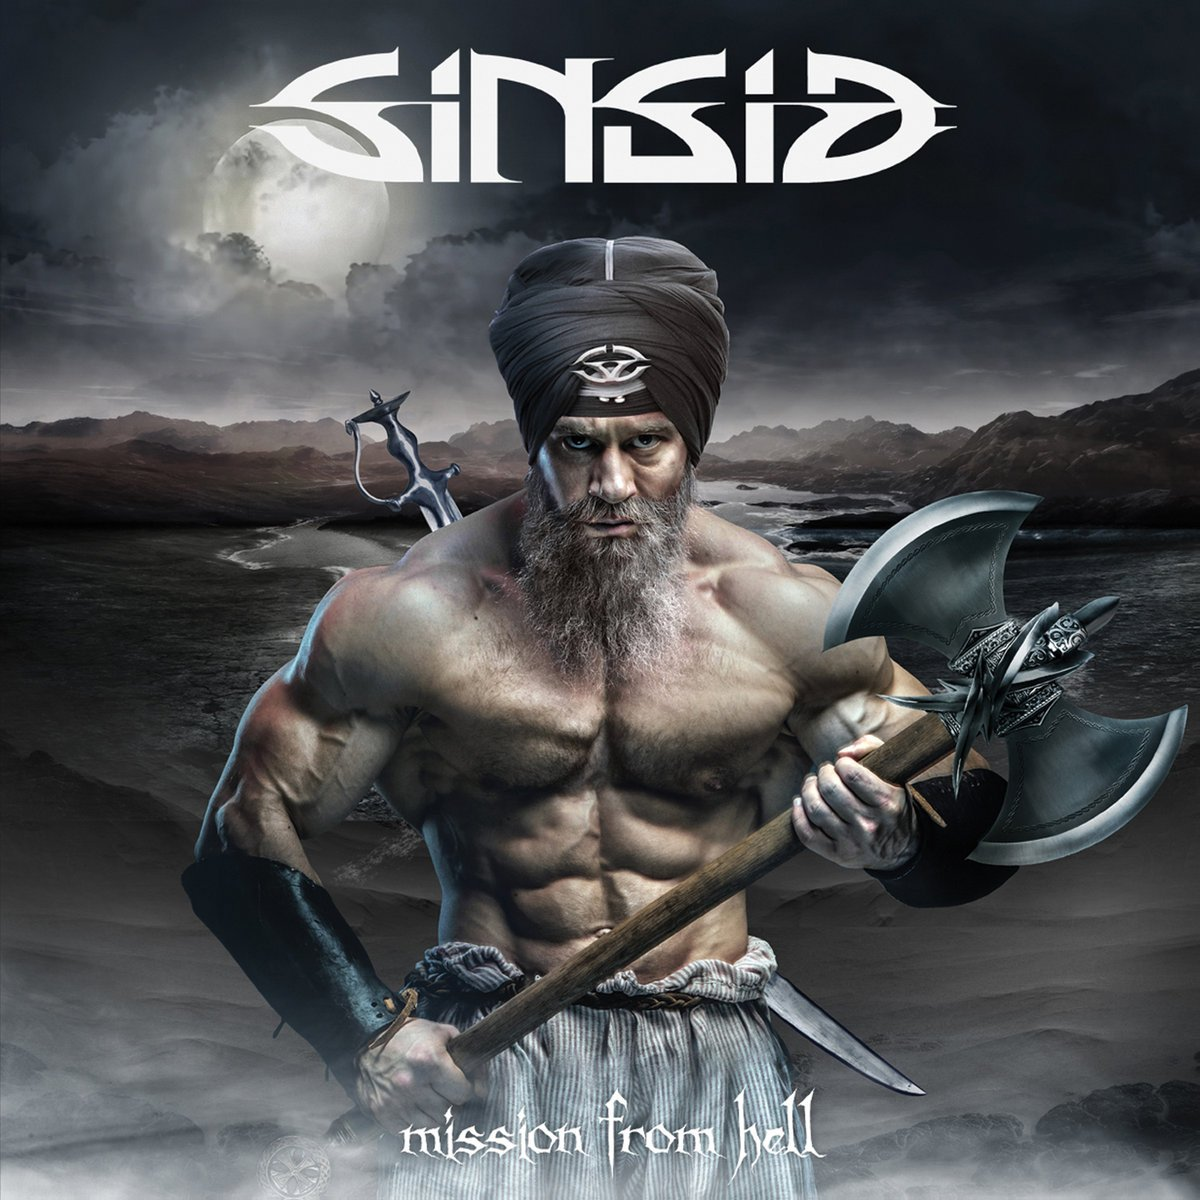 Sinsid Sinsid. Mission From Hell gothic vampires from hell